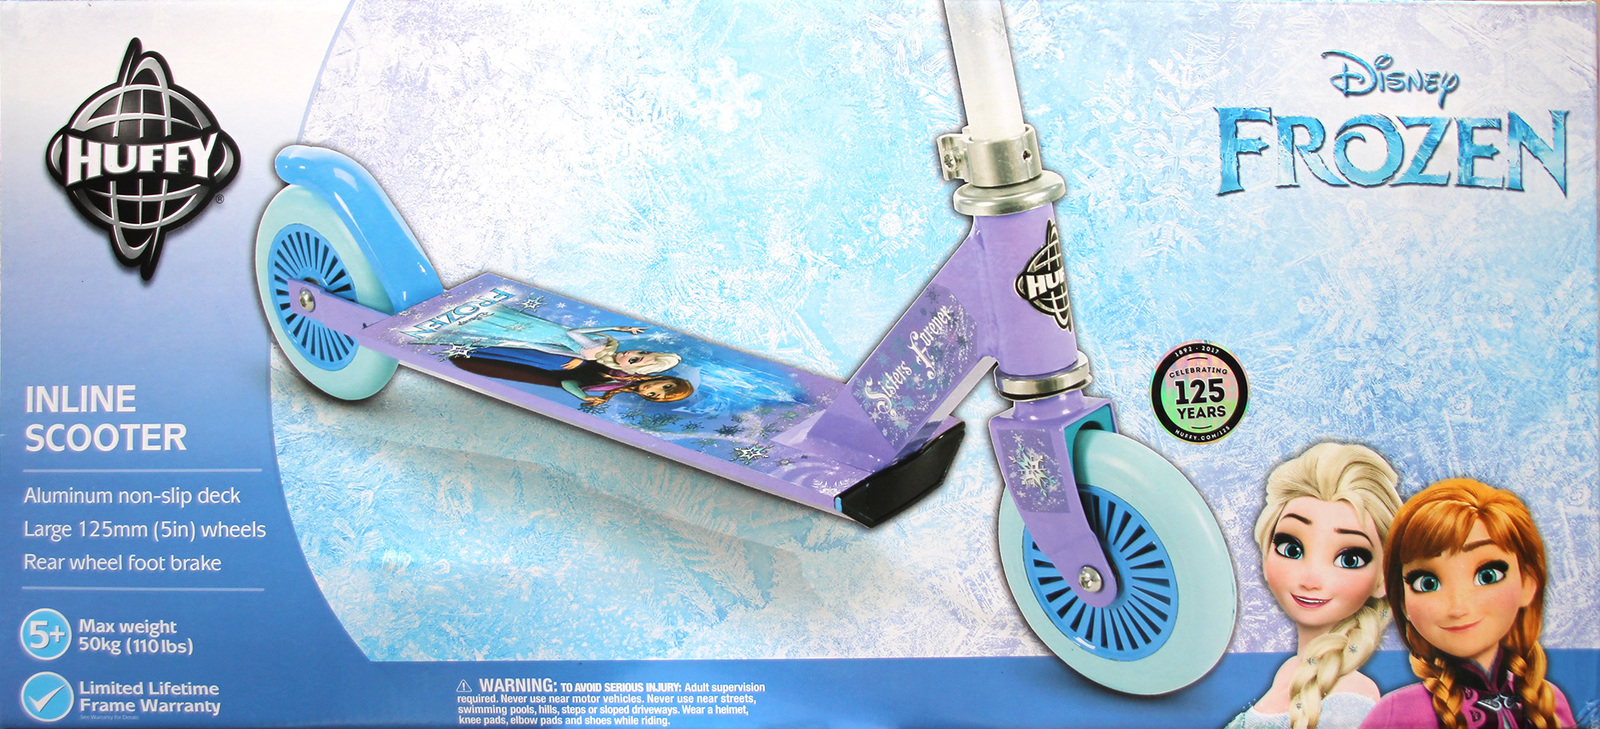 Huffy: Disney Frozen - Alloy Inline Scooter image